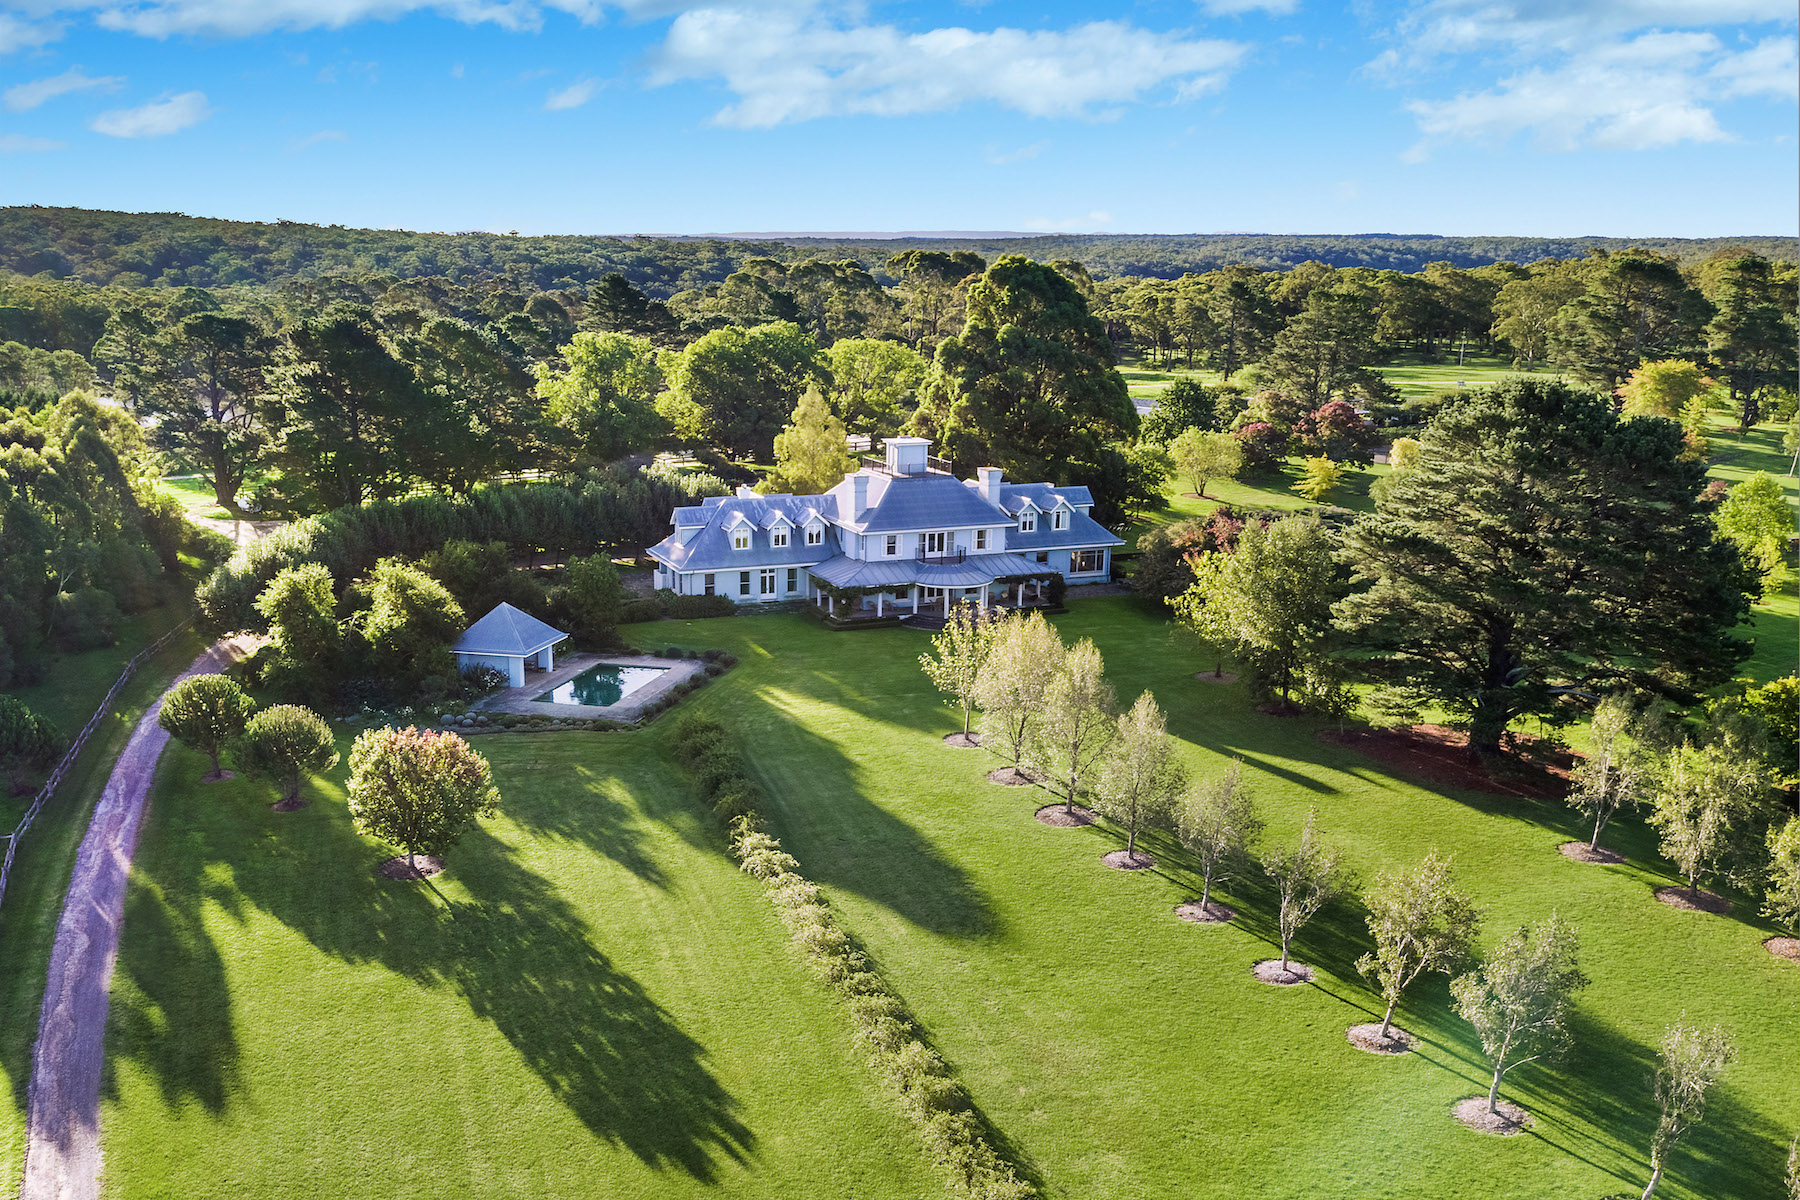 Farm / Ranch / Plantation for Sale at Wattle Ridge Farm 700 Wattle Ridge Road Sydney, New South Wales 2575 Australia